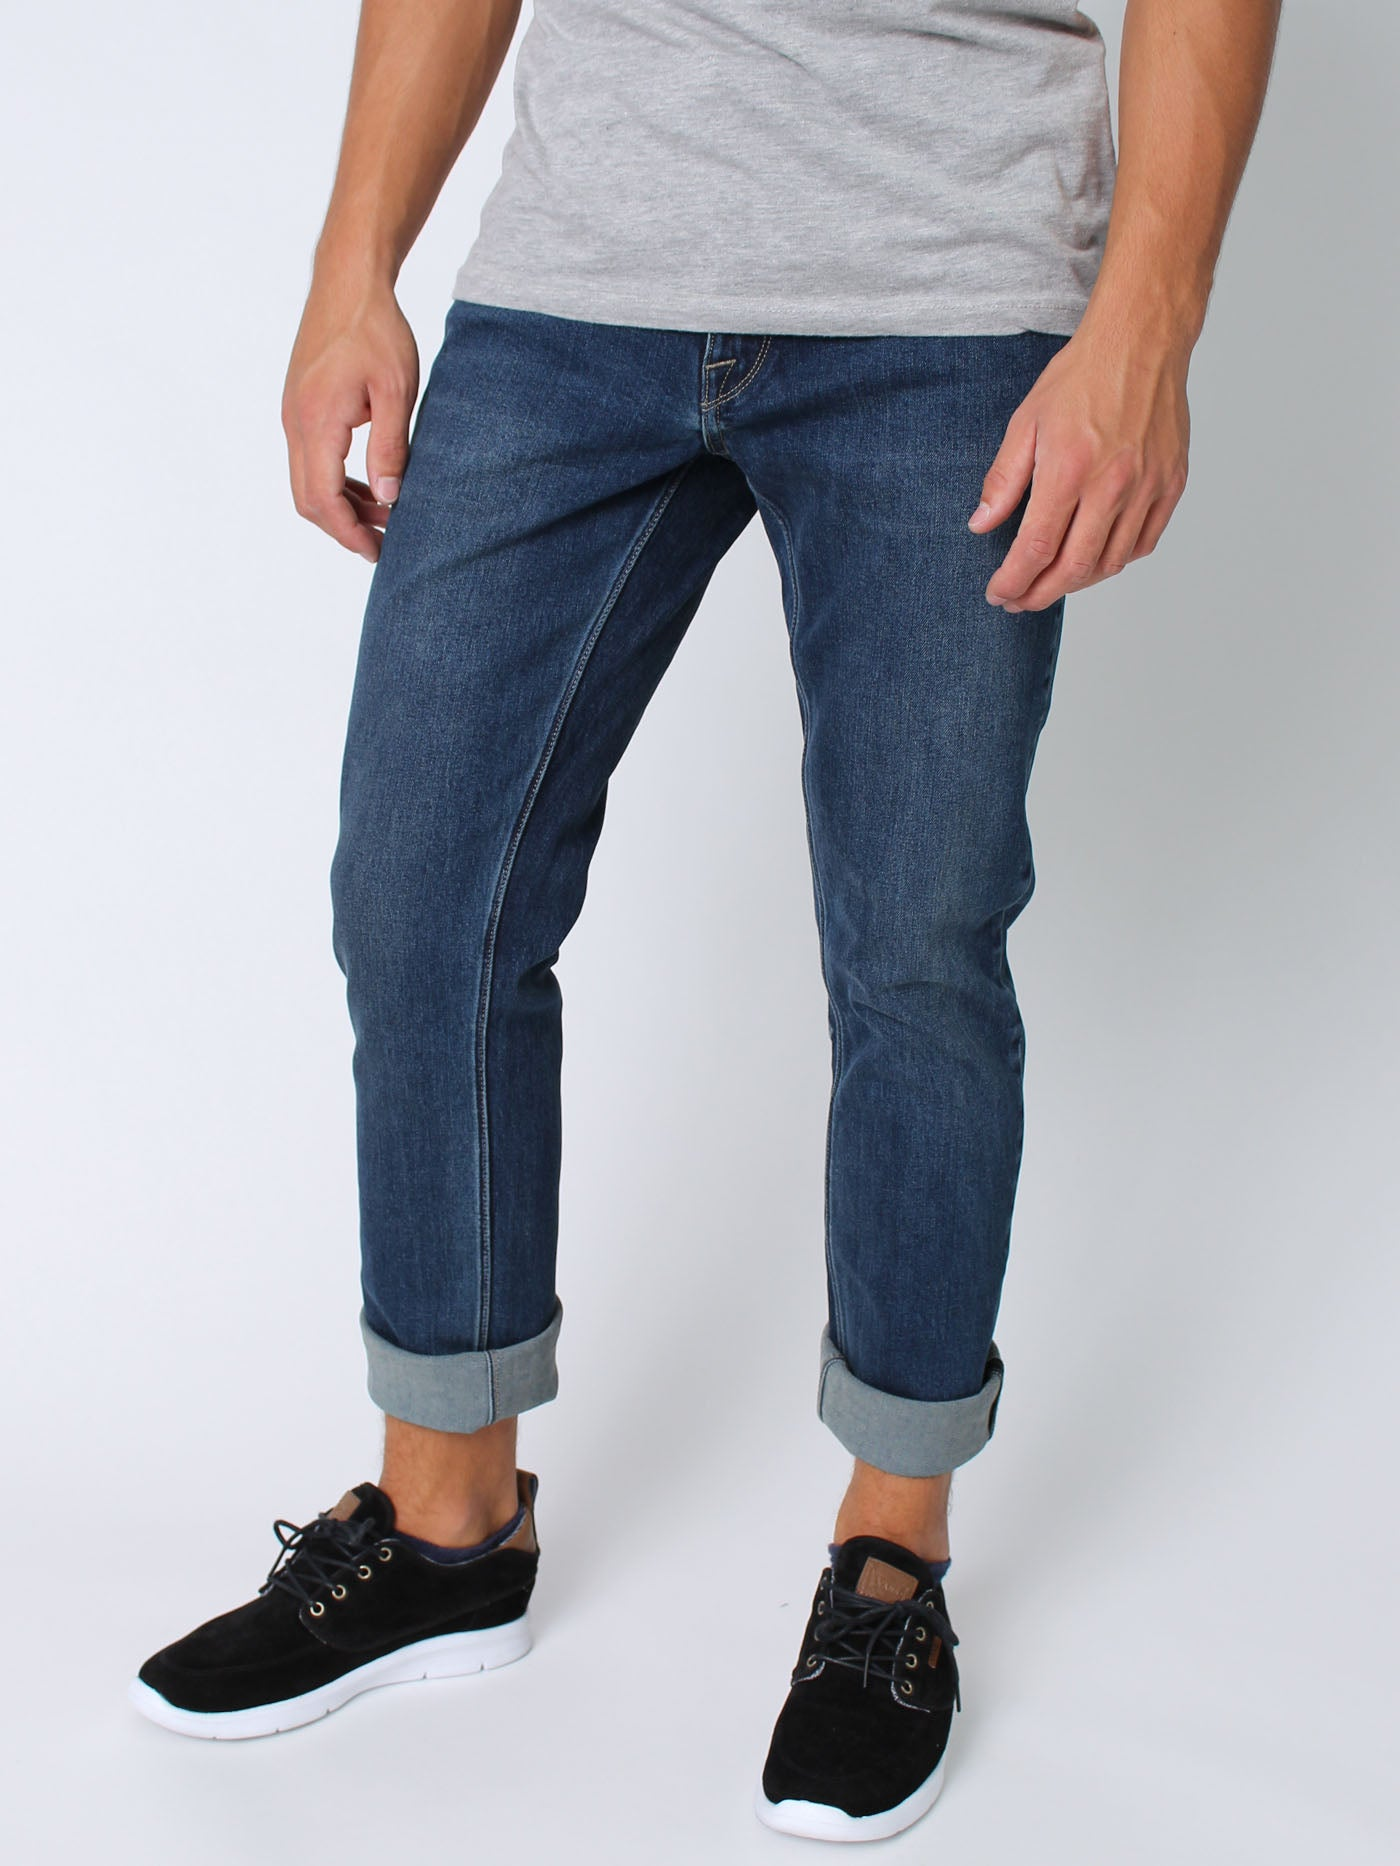 MEDIUM BLUE WASH (MBW)